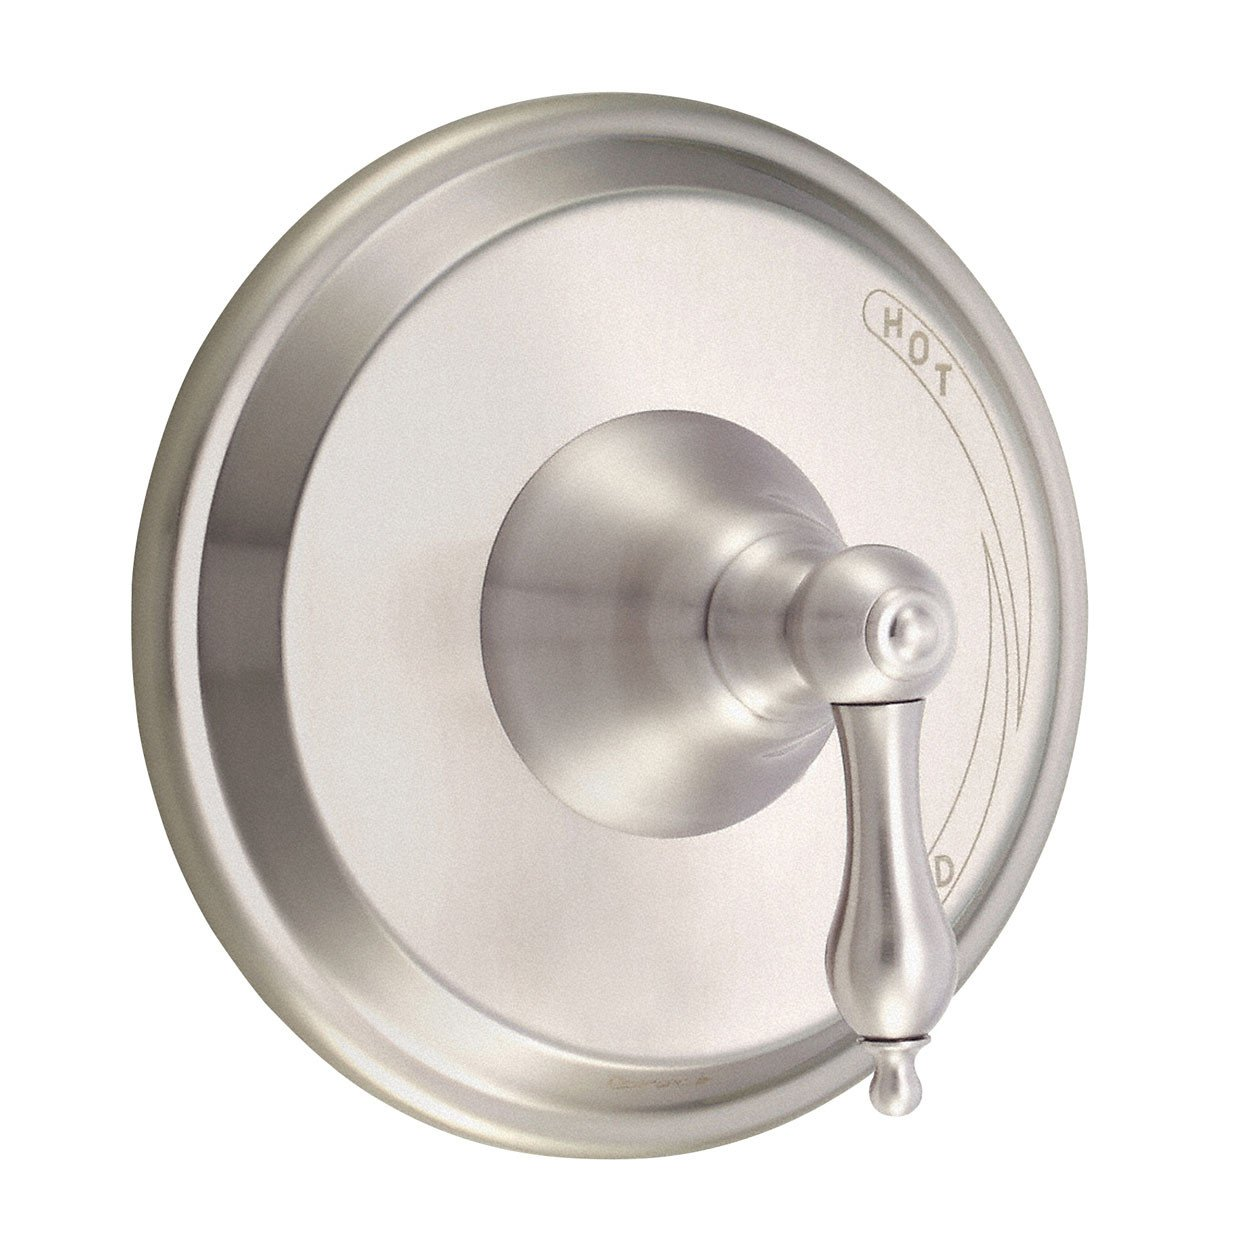 Danze Fairmont Brushed Nickel Pressure Balance Single Handle Shower Control INCLUDES Rough-in Valve